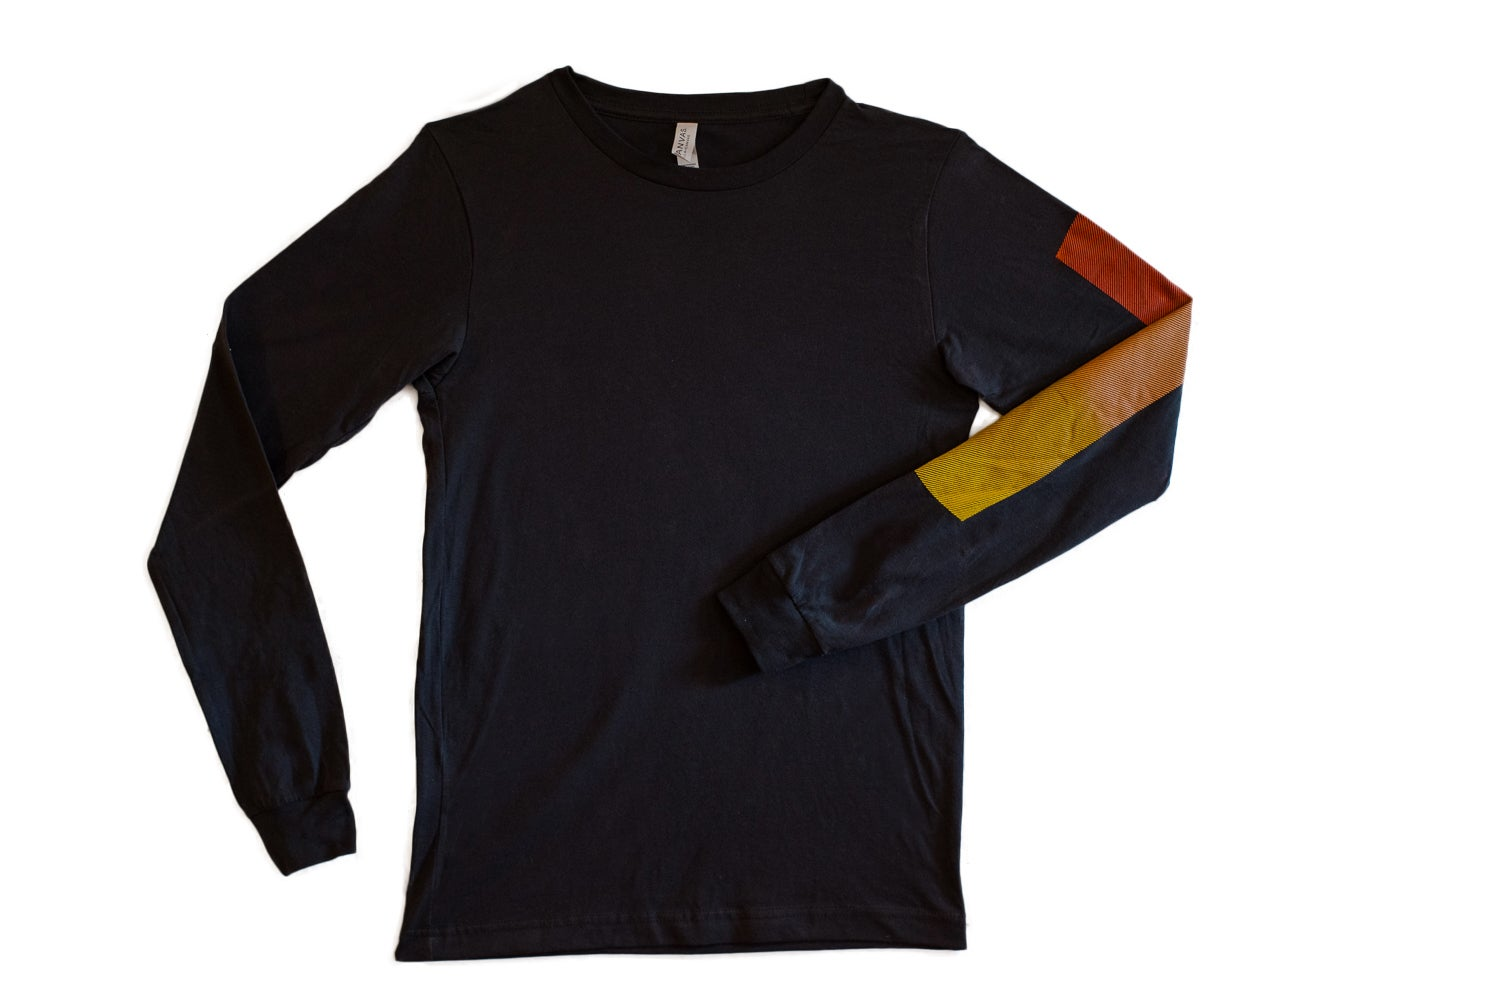 Image of Unisex SPACE Long Sleeve T-Shirt in Asphalt